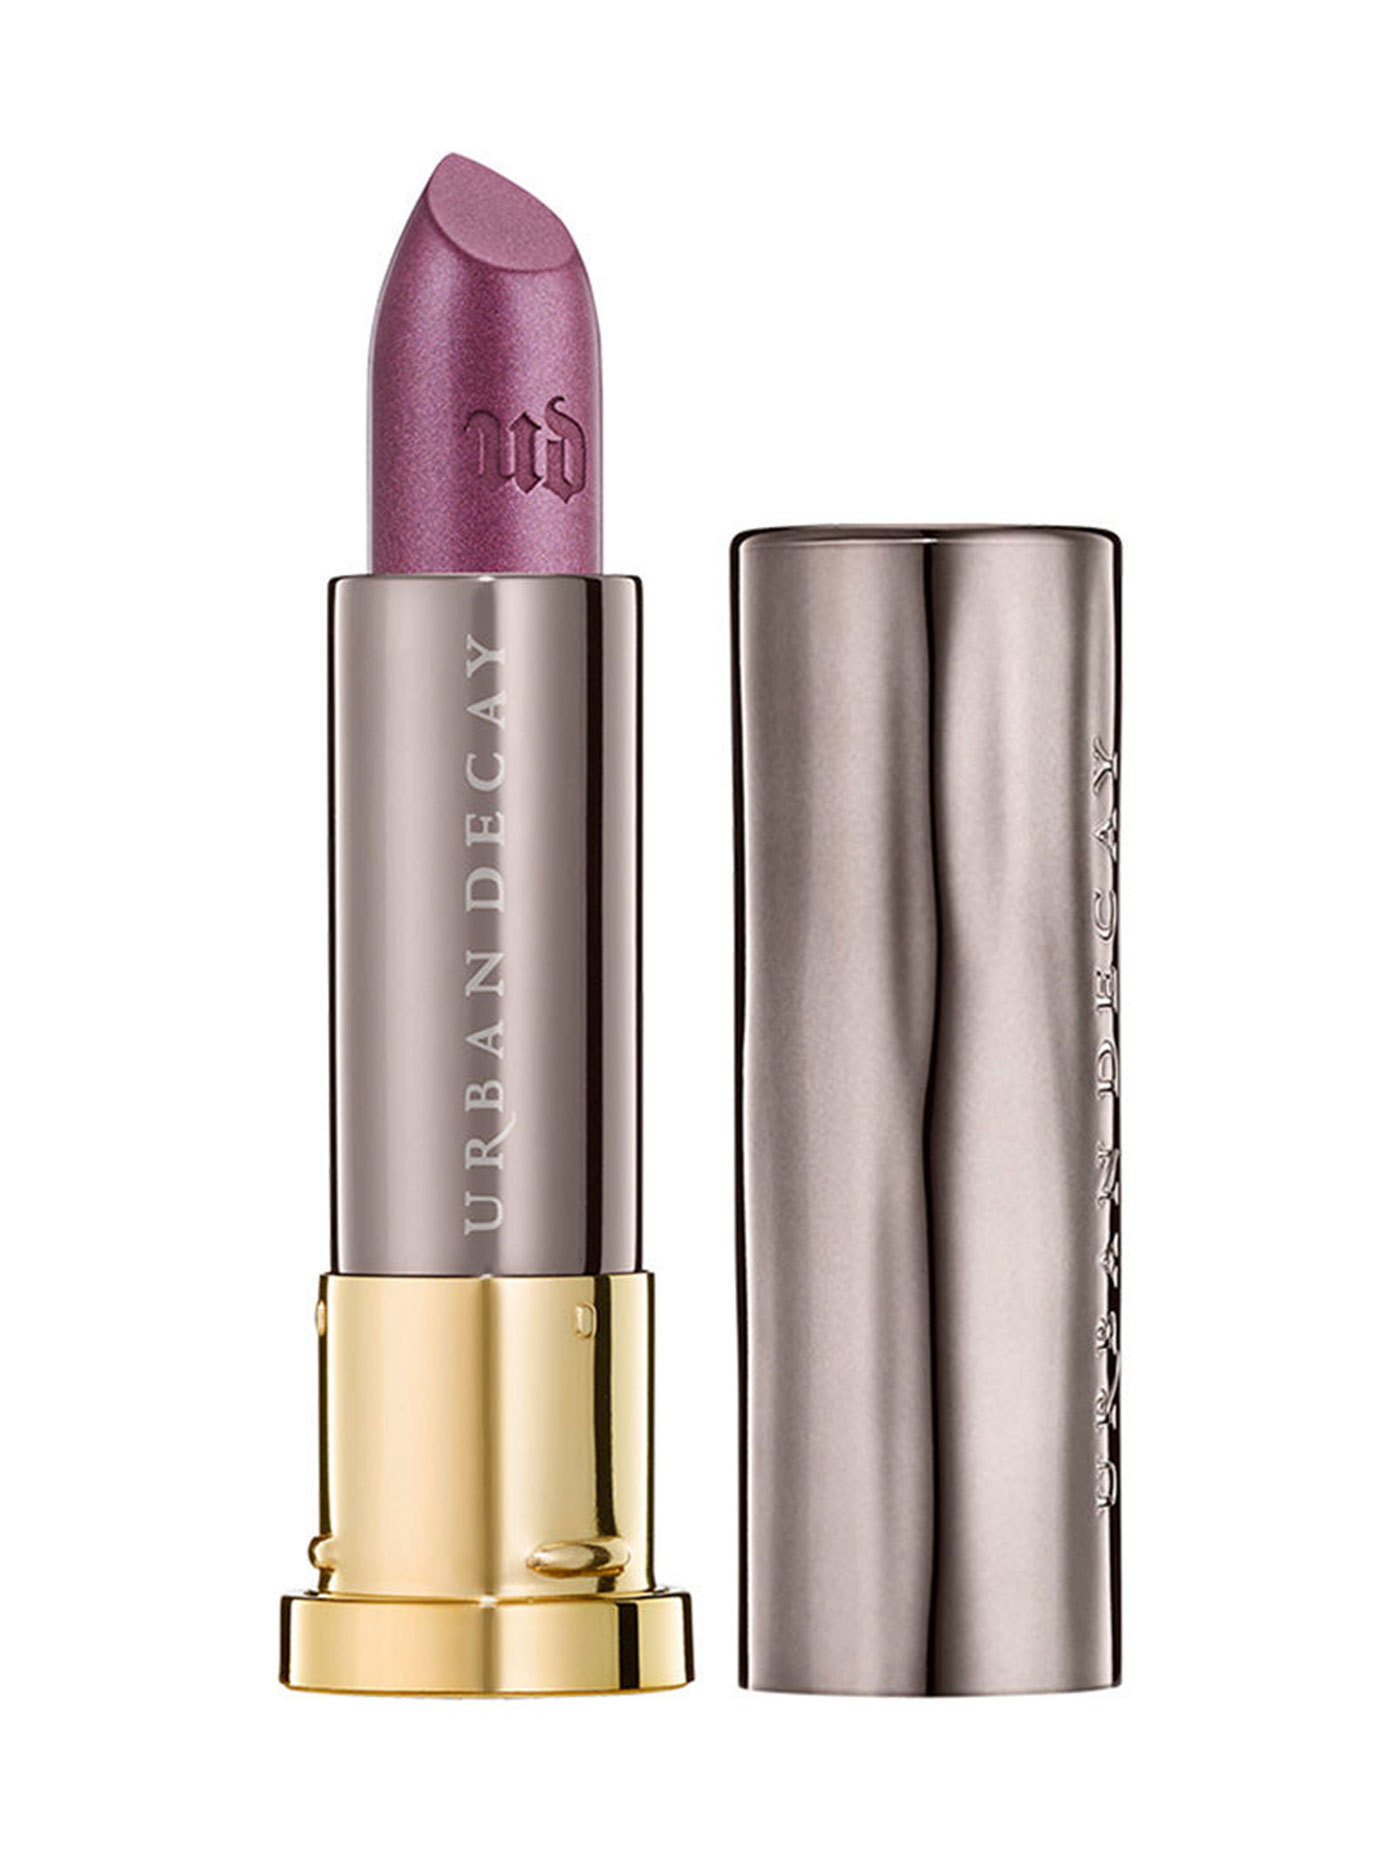 URBAN DECAY Vice Lipstick #Backfire (パープル) 送料無 追跡有